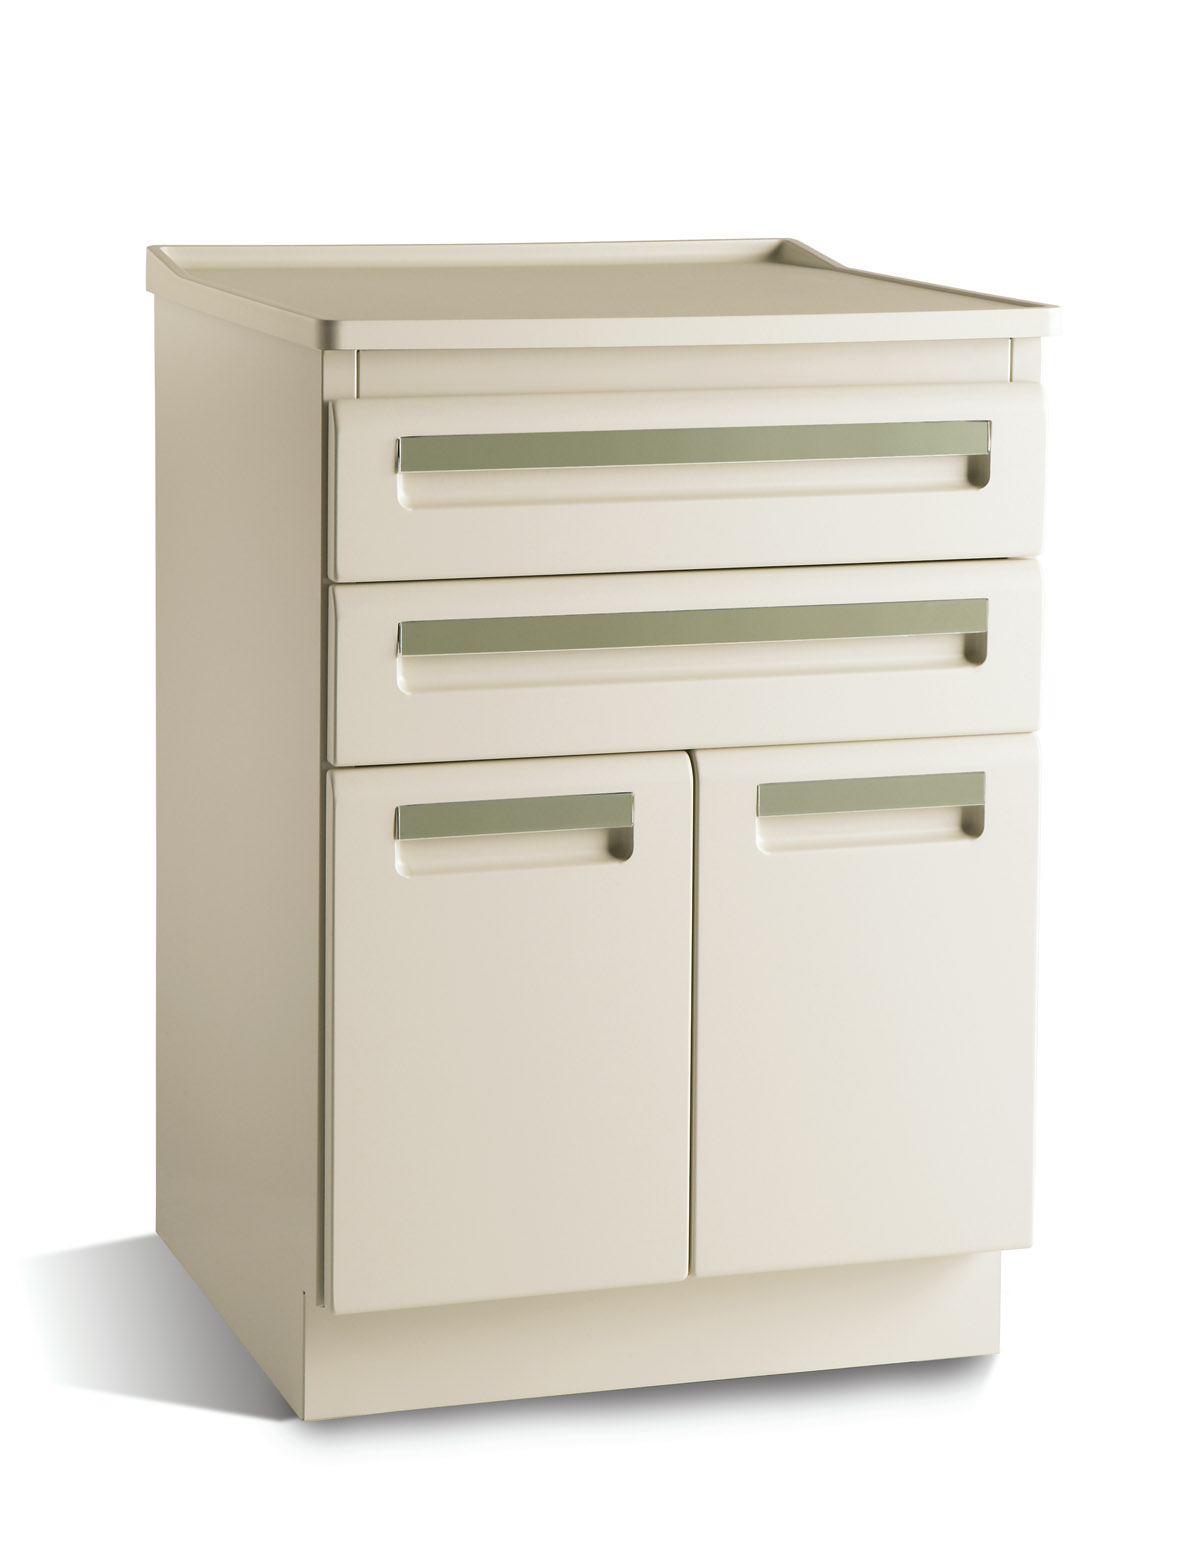 CABINET, TREATMENT, 24x18, 2 DR/2 DRW, PEBBLE GREY